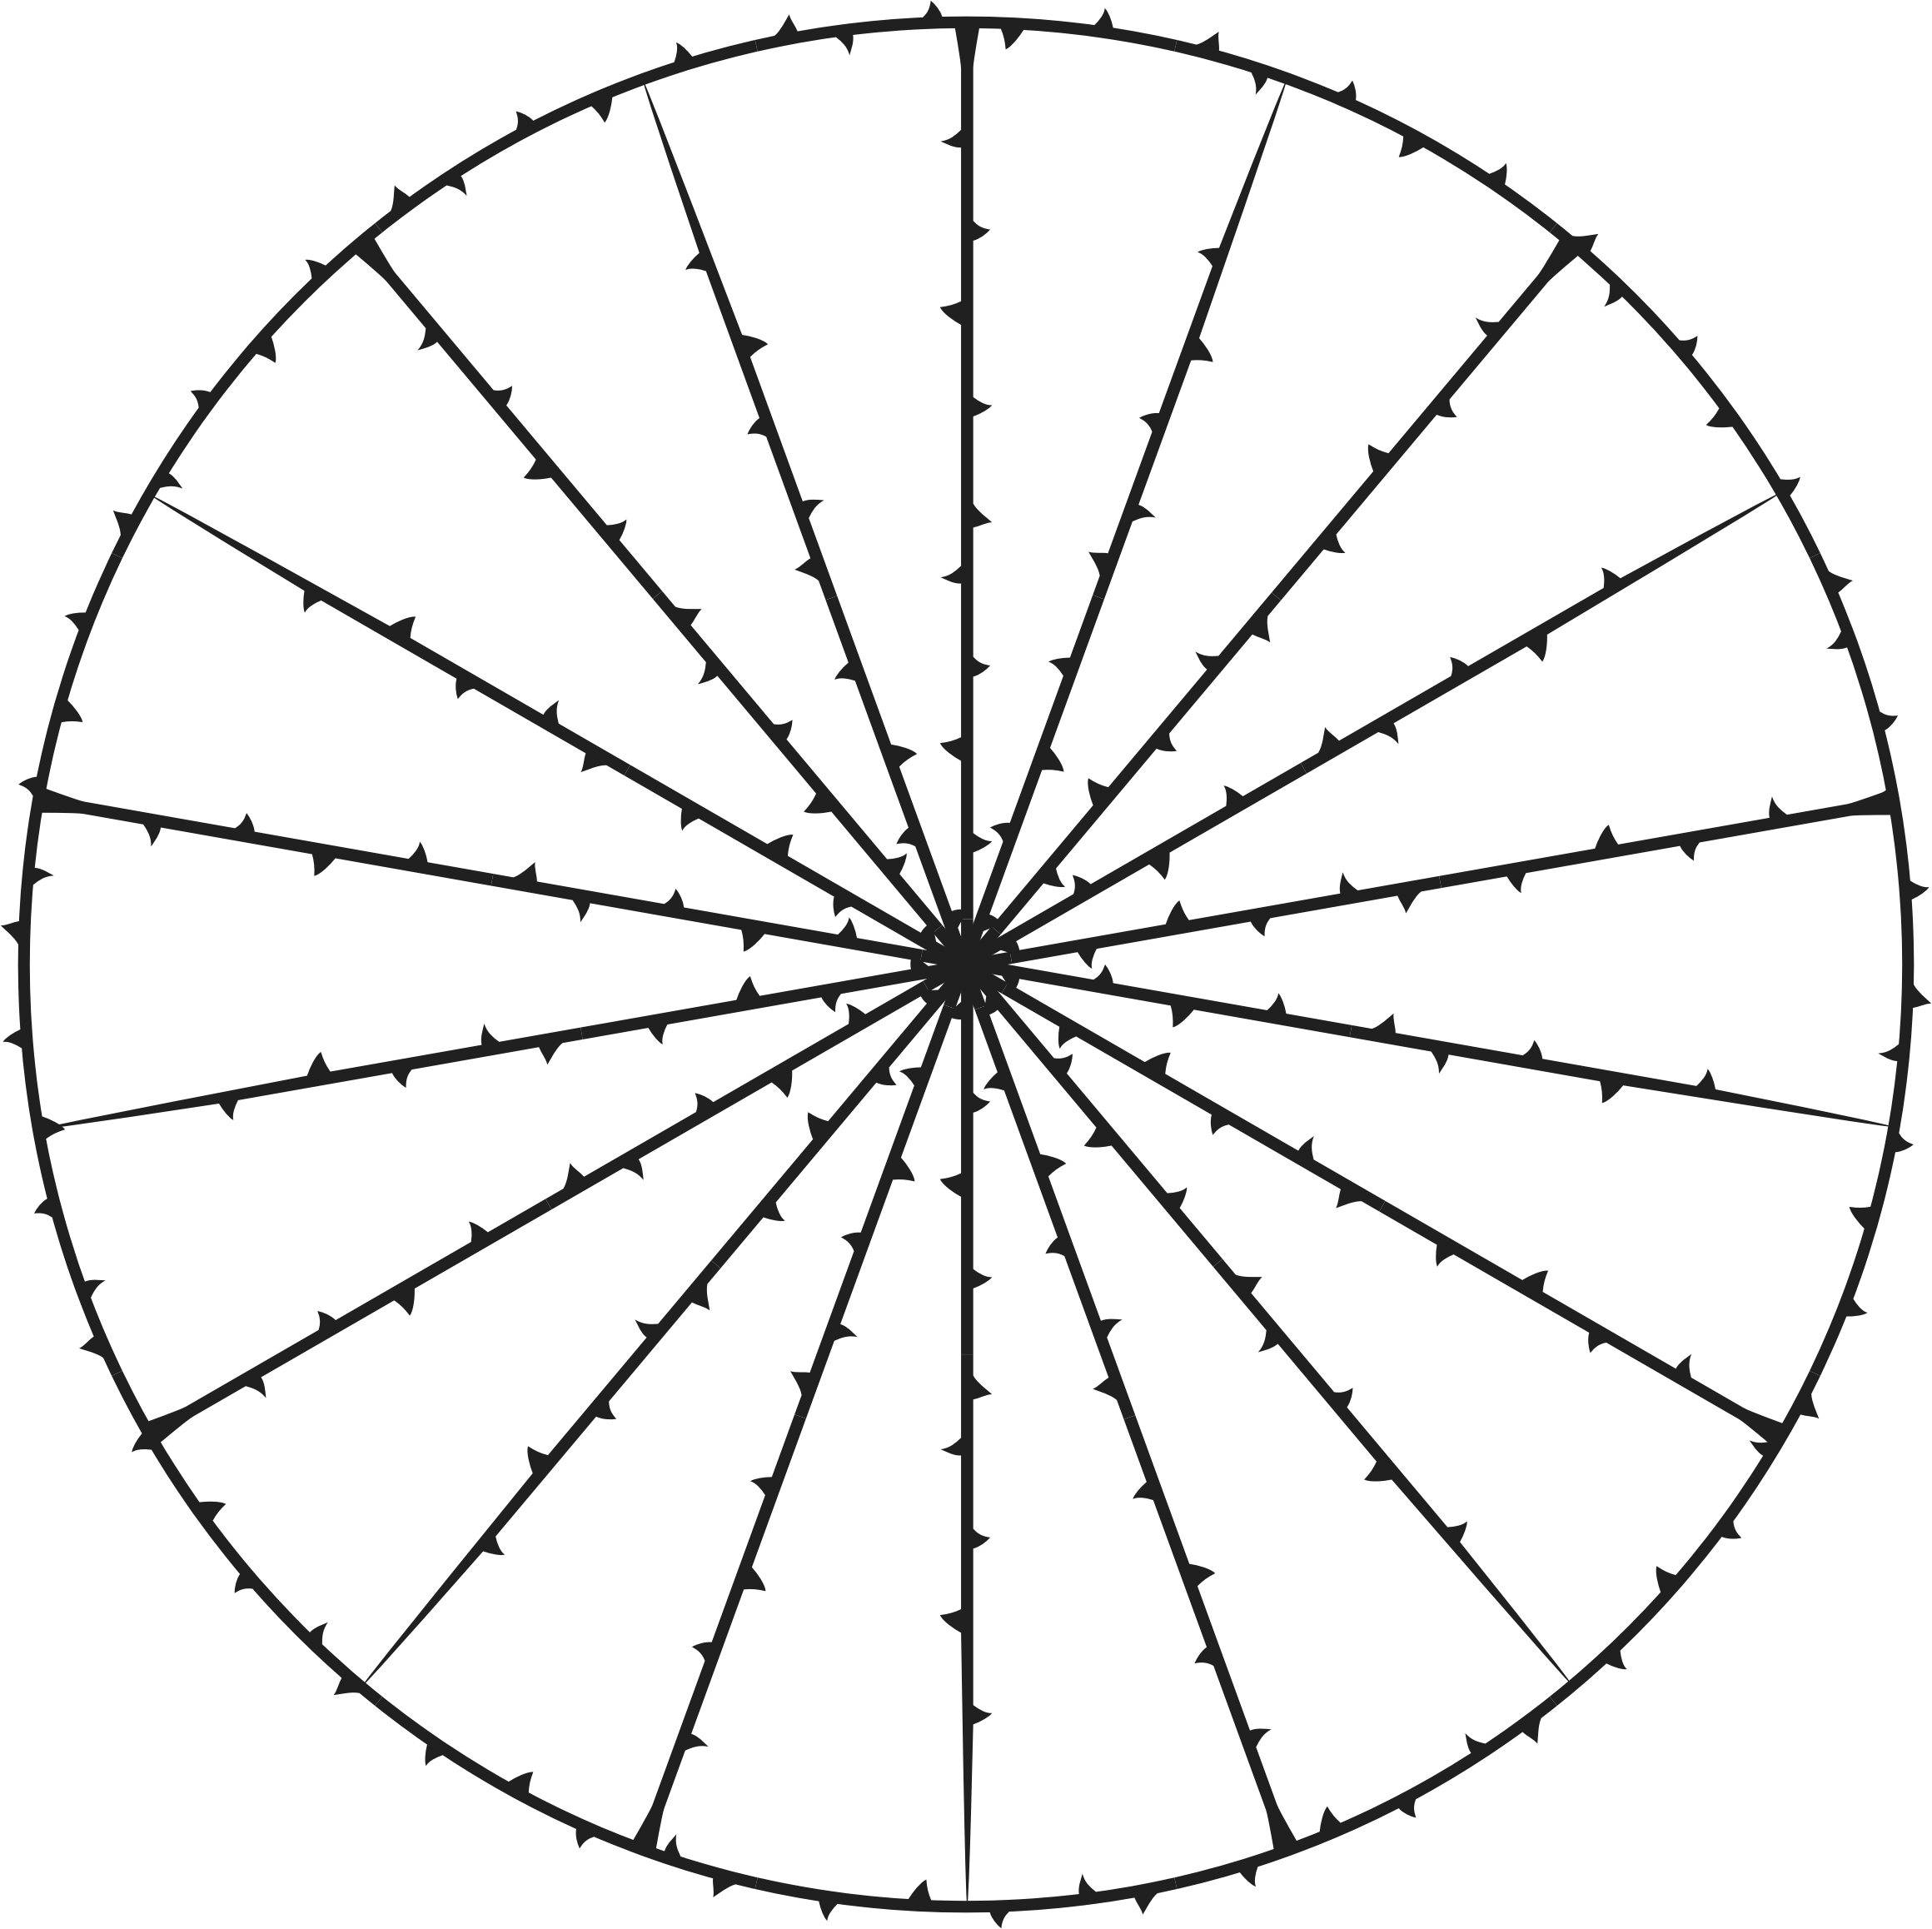 Wheel clipart black and white. Of thorns big image